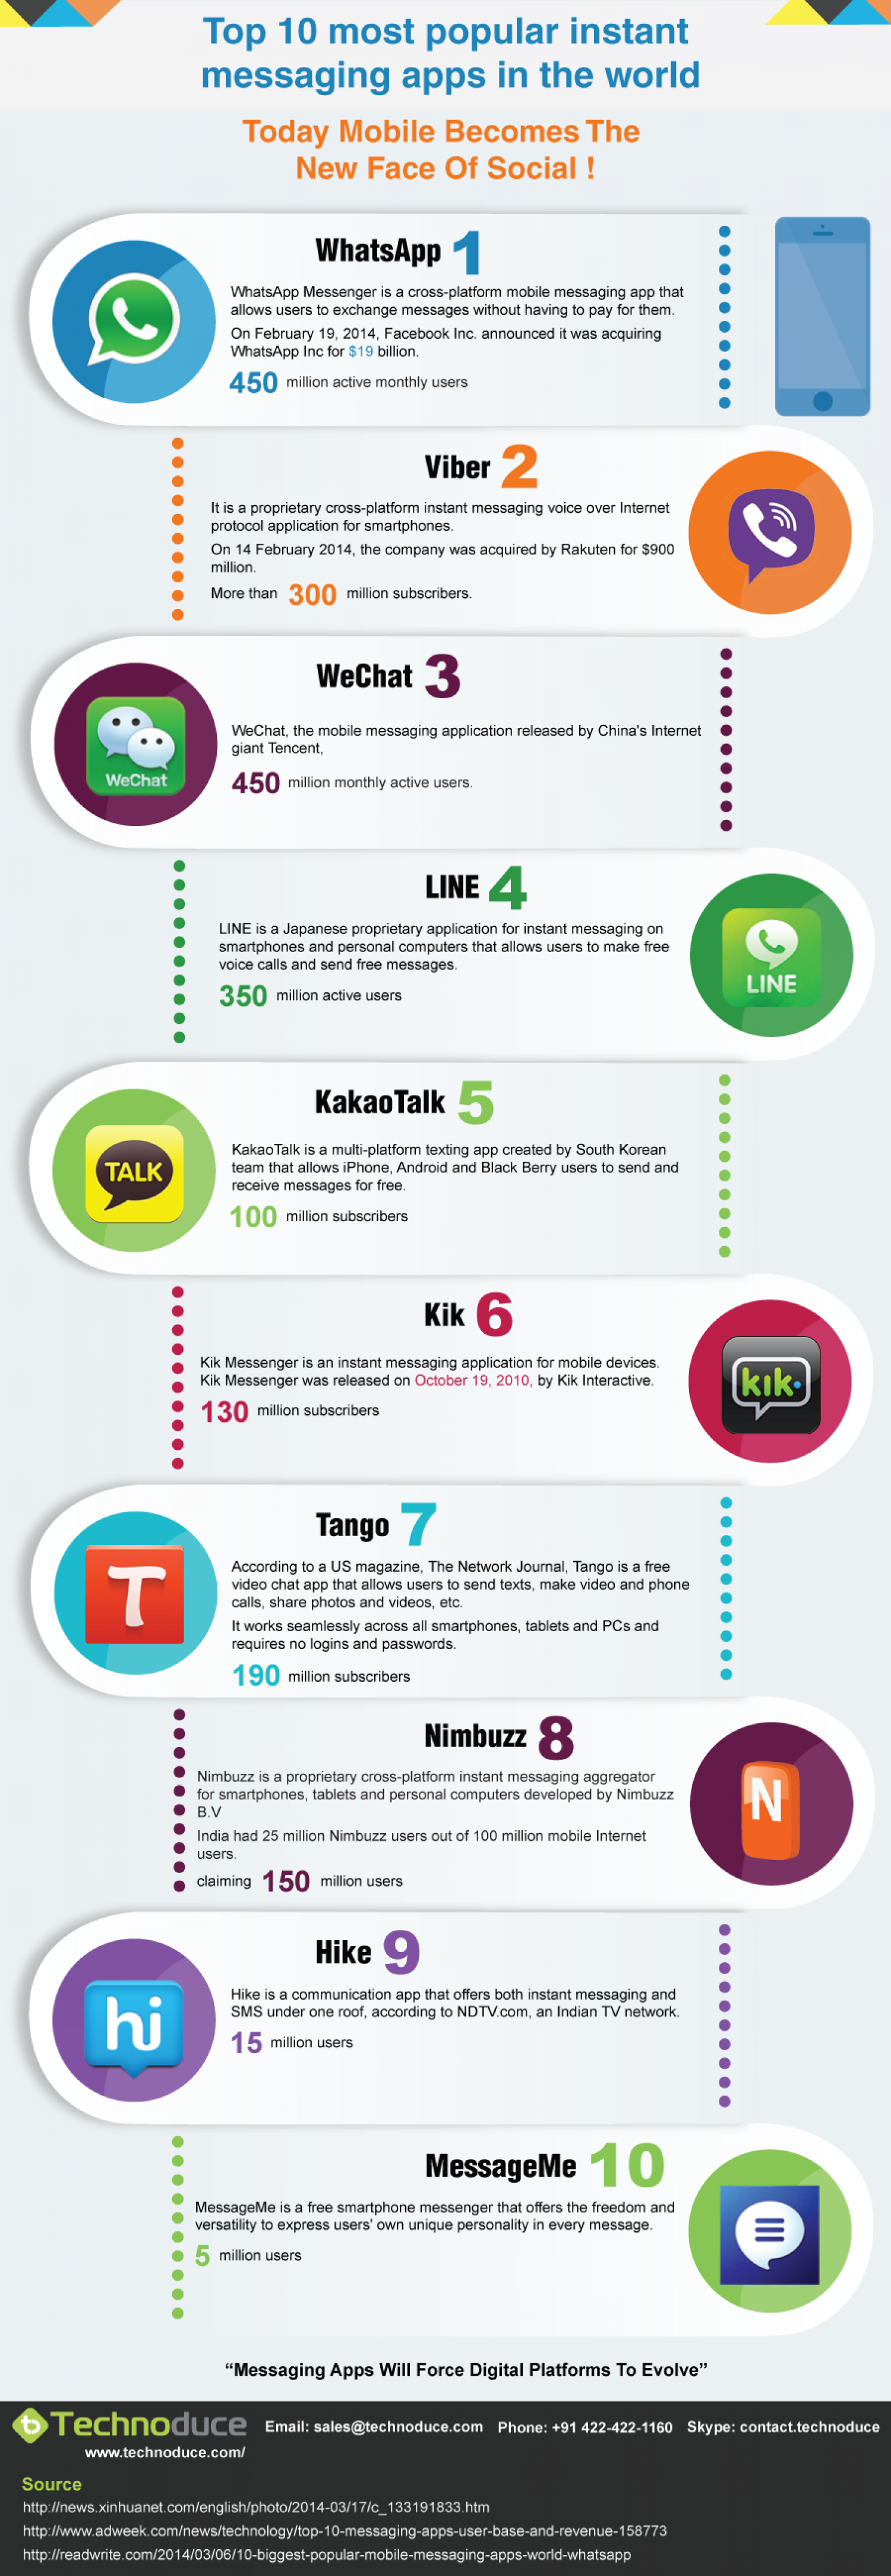 Top 10 Instant Messaging Apps | Visual.ly